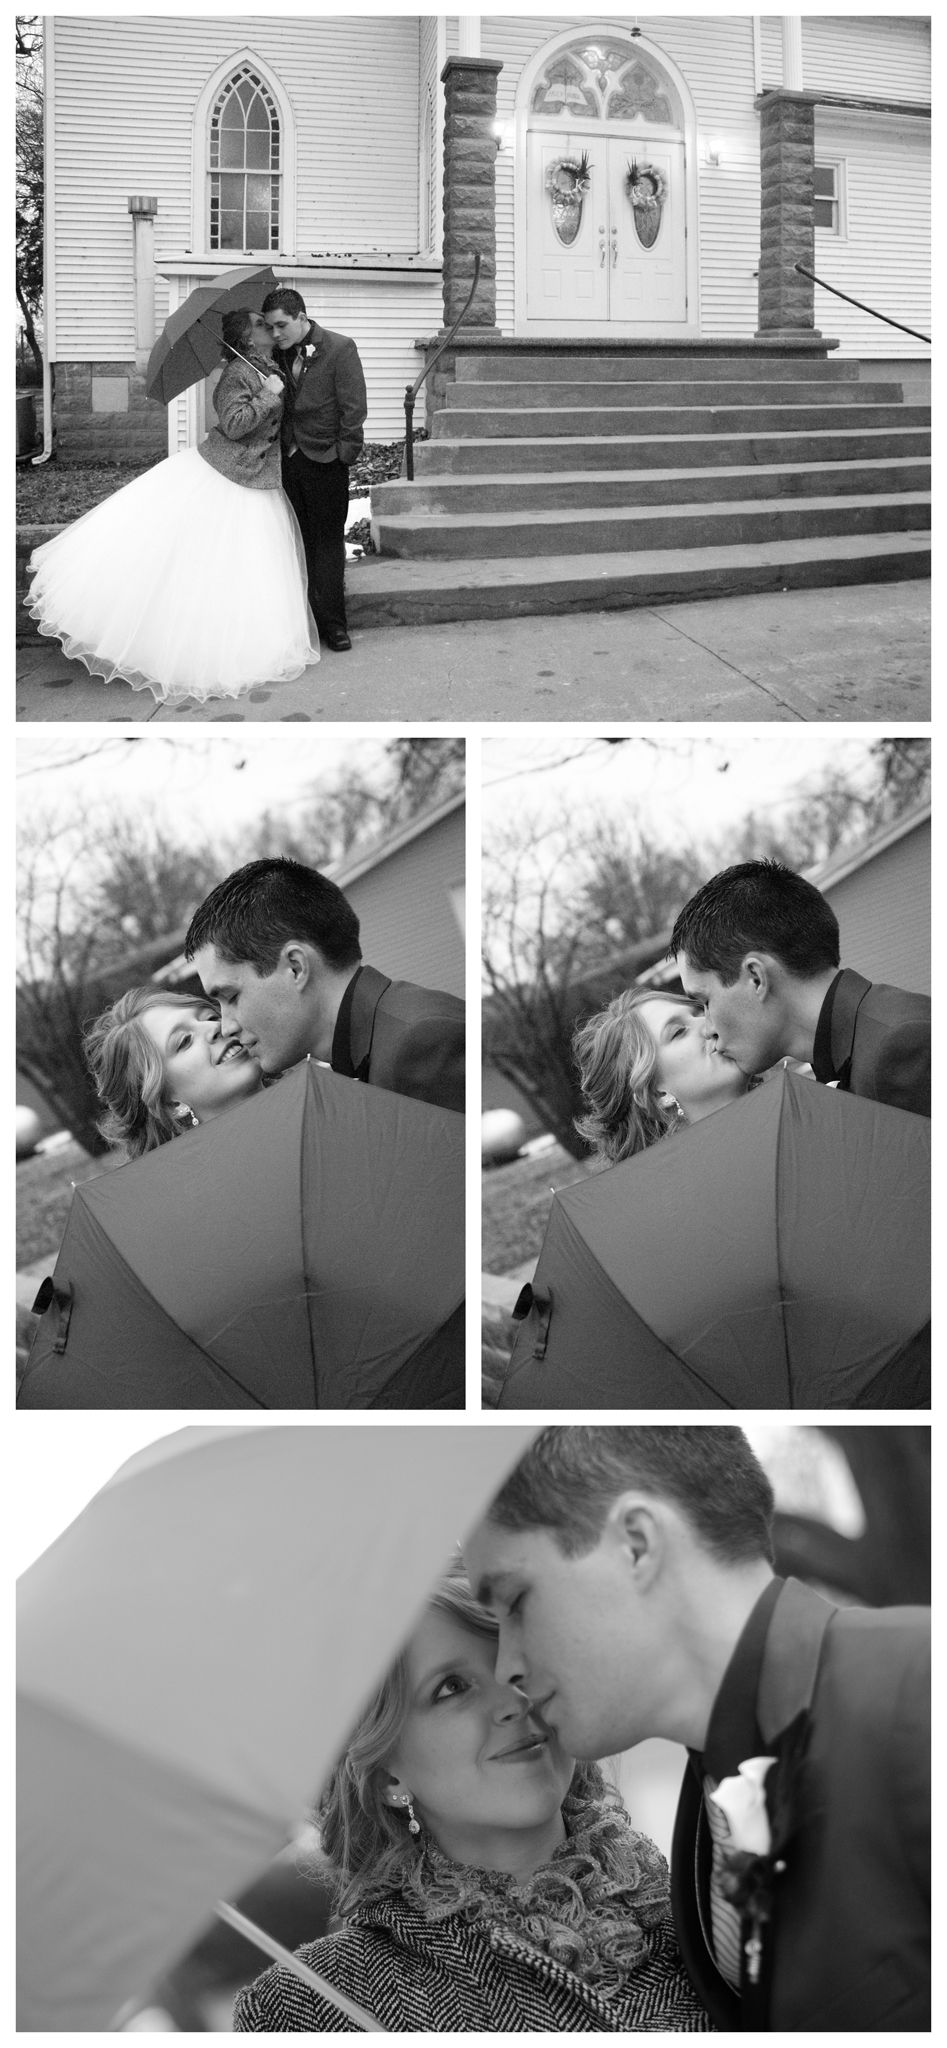 Umbrella Wedding Photo by Johnson County Wedding Photographer Brittany Tarchala